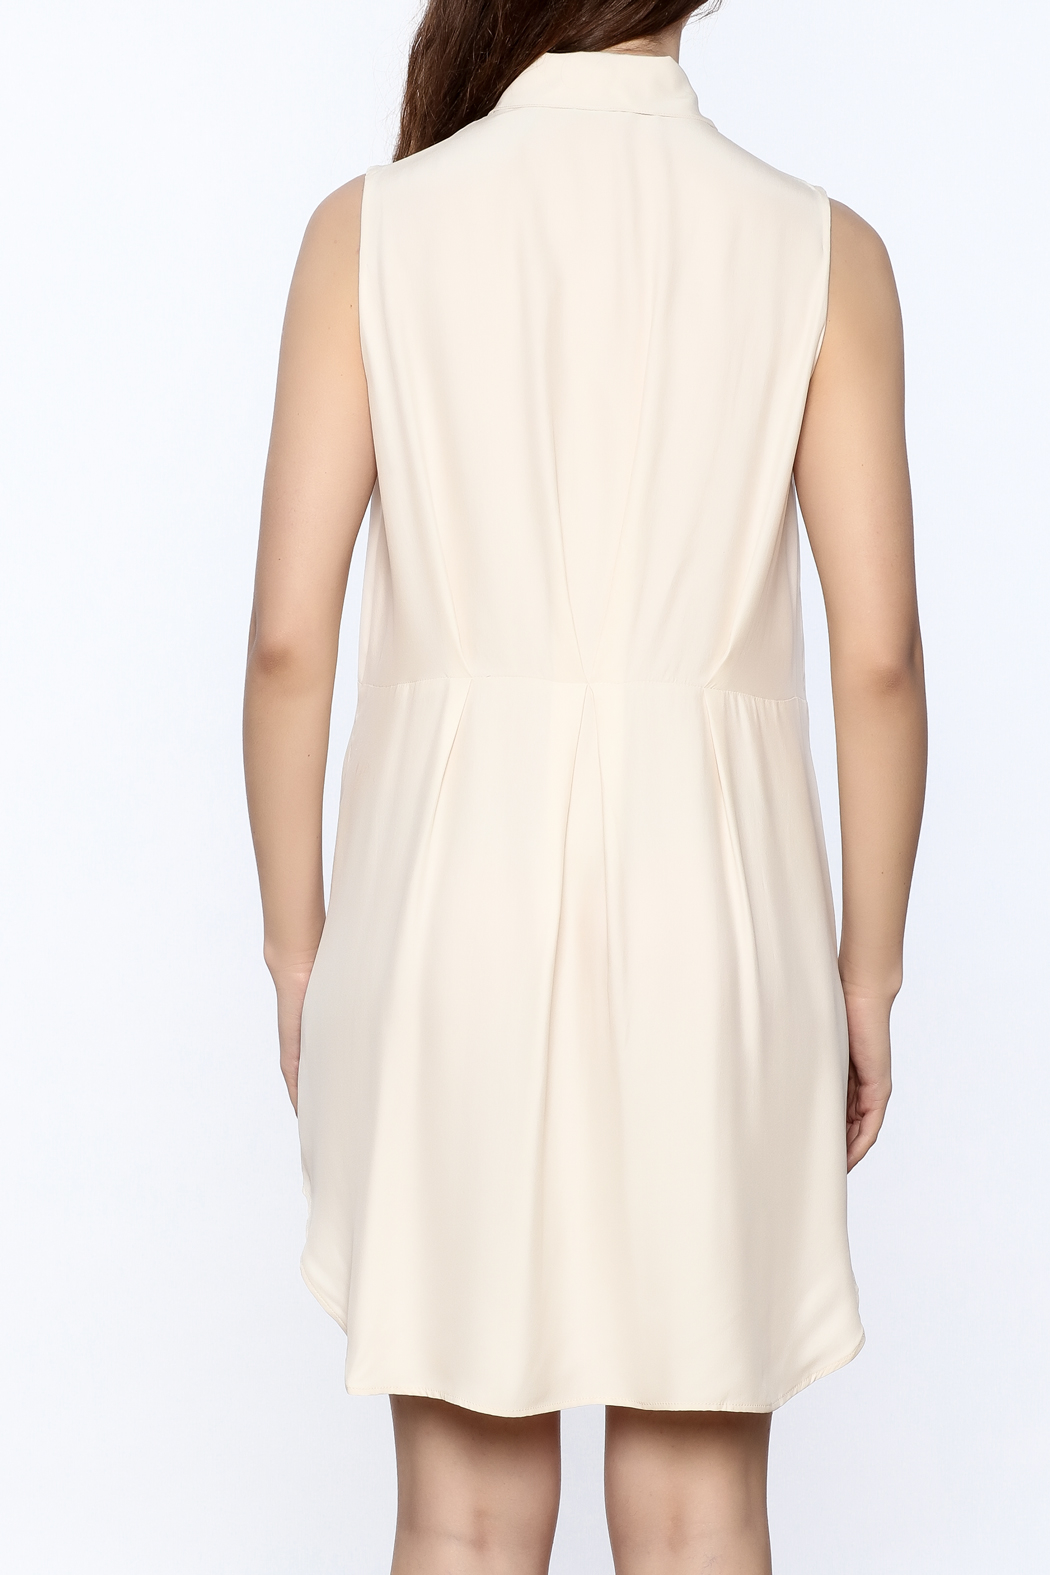 Zoa Beige Silk Dress - Back Cropped Image